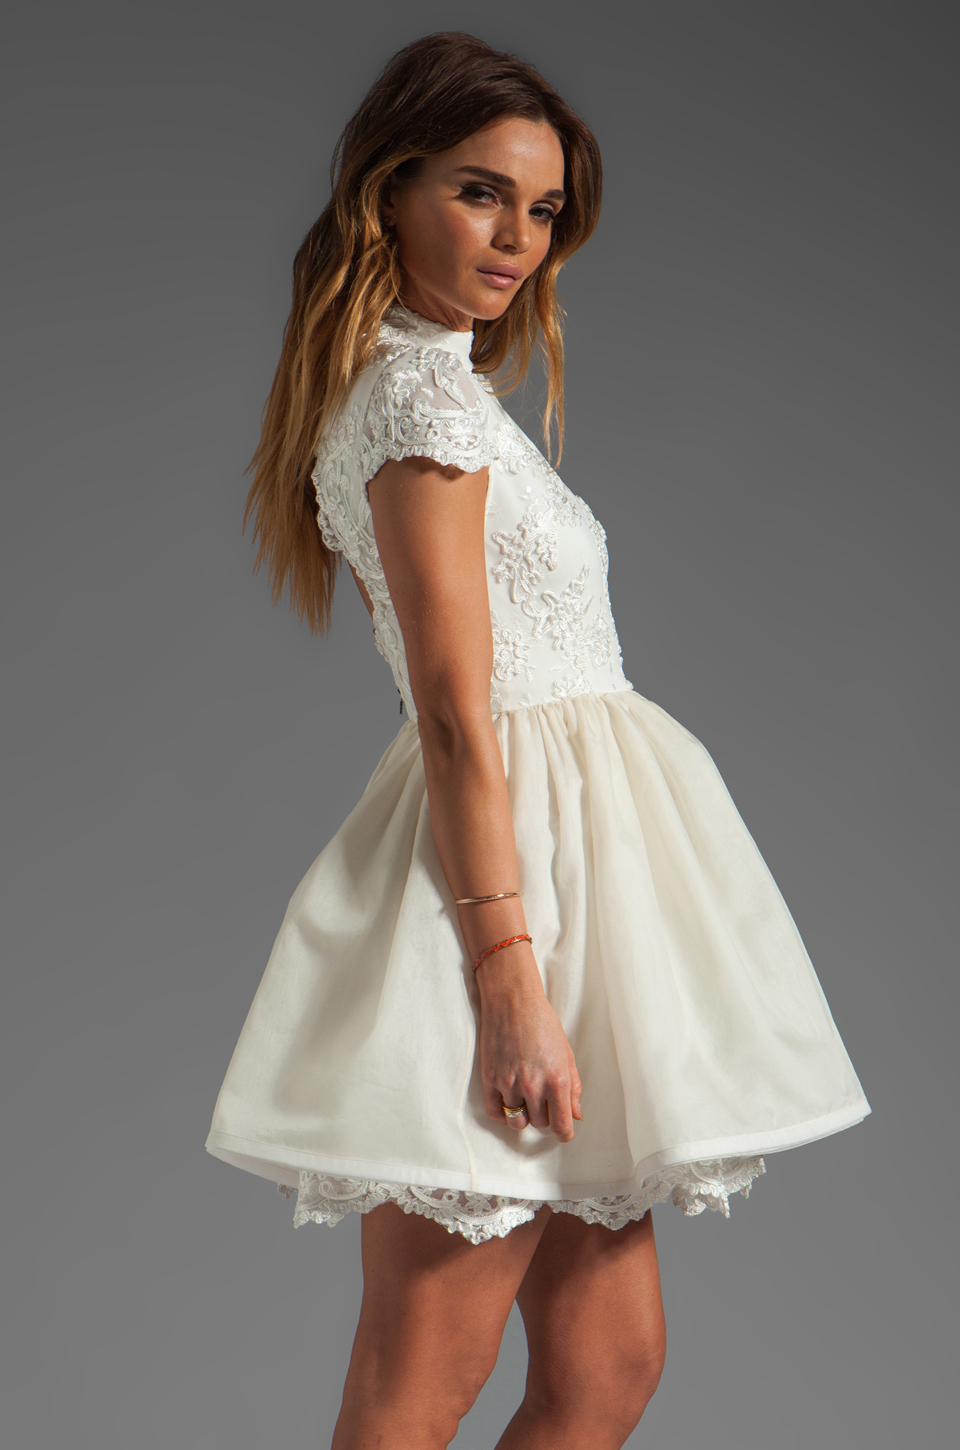 Alice + Olivia Fyona Lace Bodice Party Dress in Off White